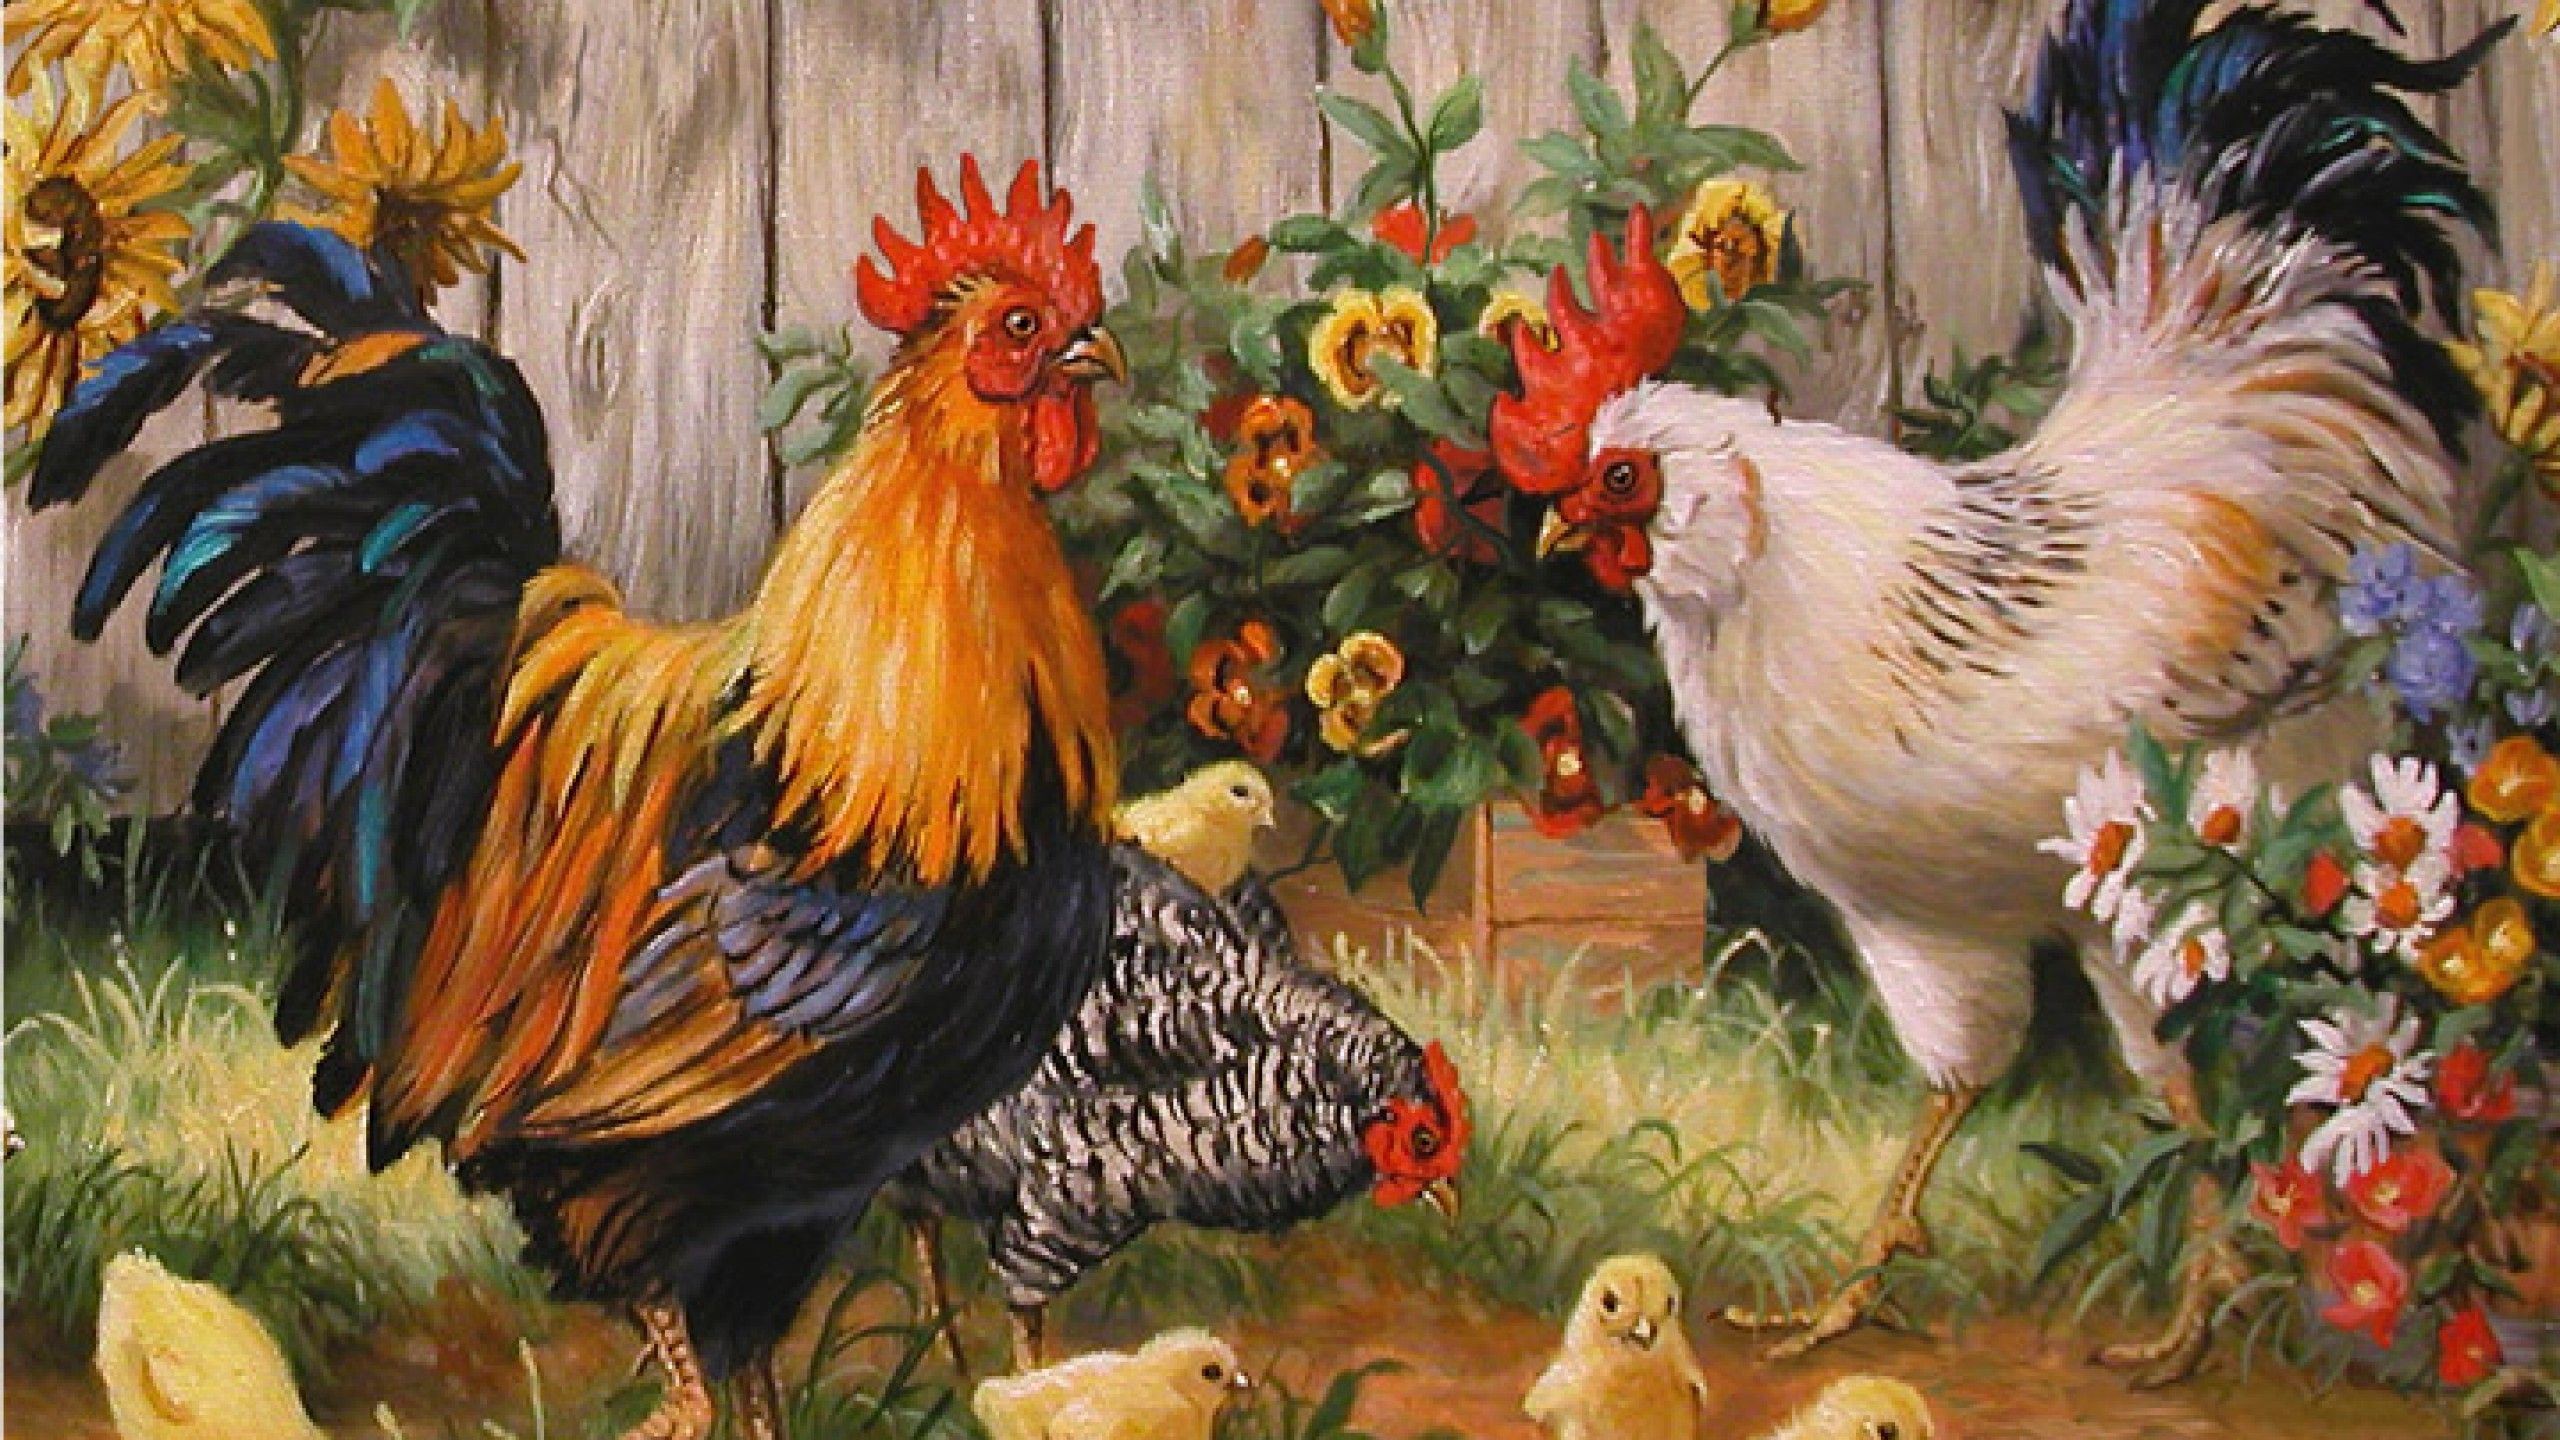 Rooster Wallpaper Painting Chicken Rooster art Chicken 2560x1440